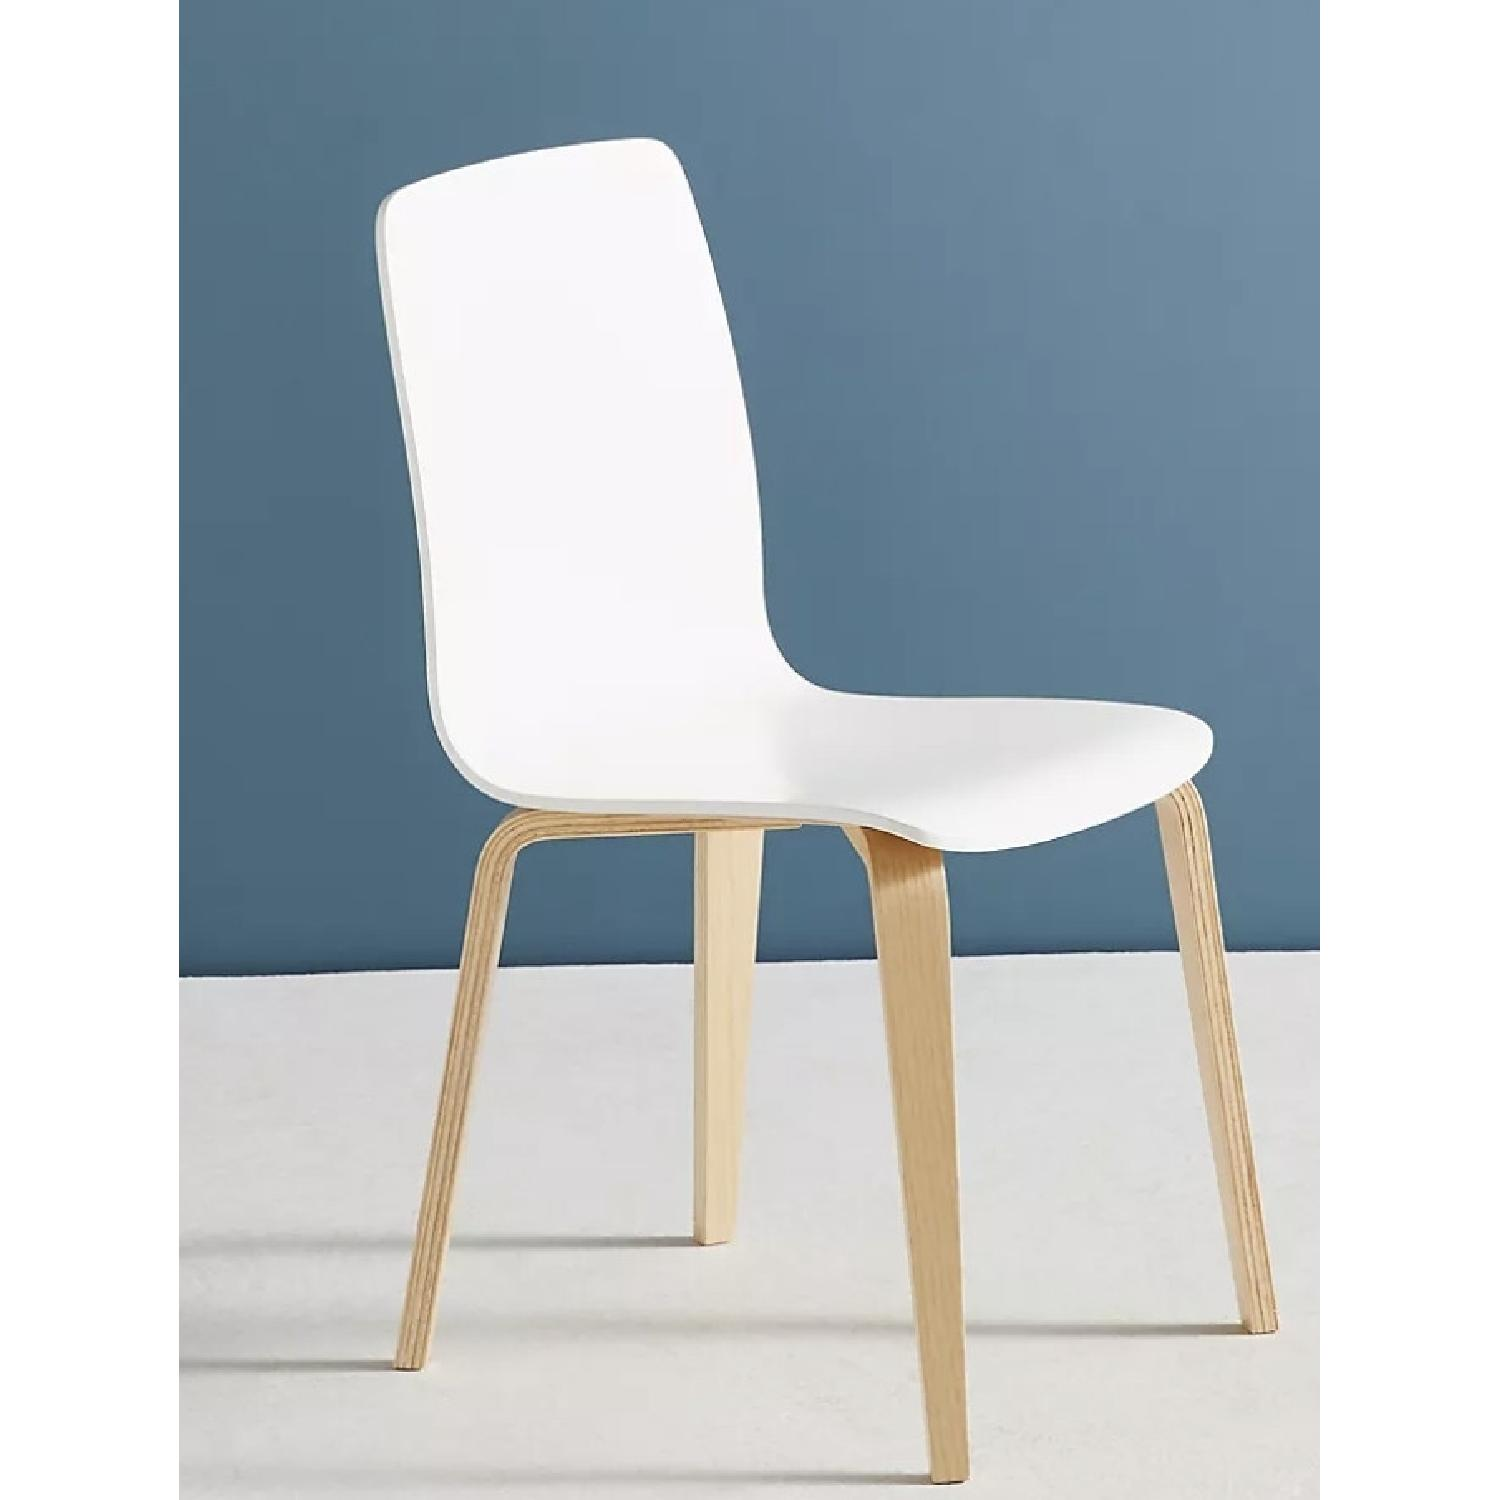 Anthropologie White Tamsin Dining Chairs (4) - image-7